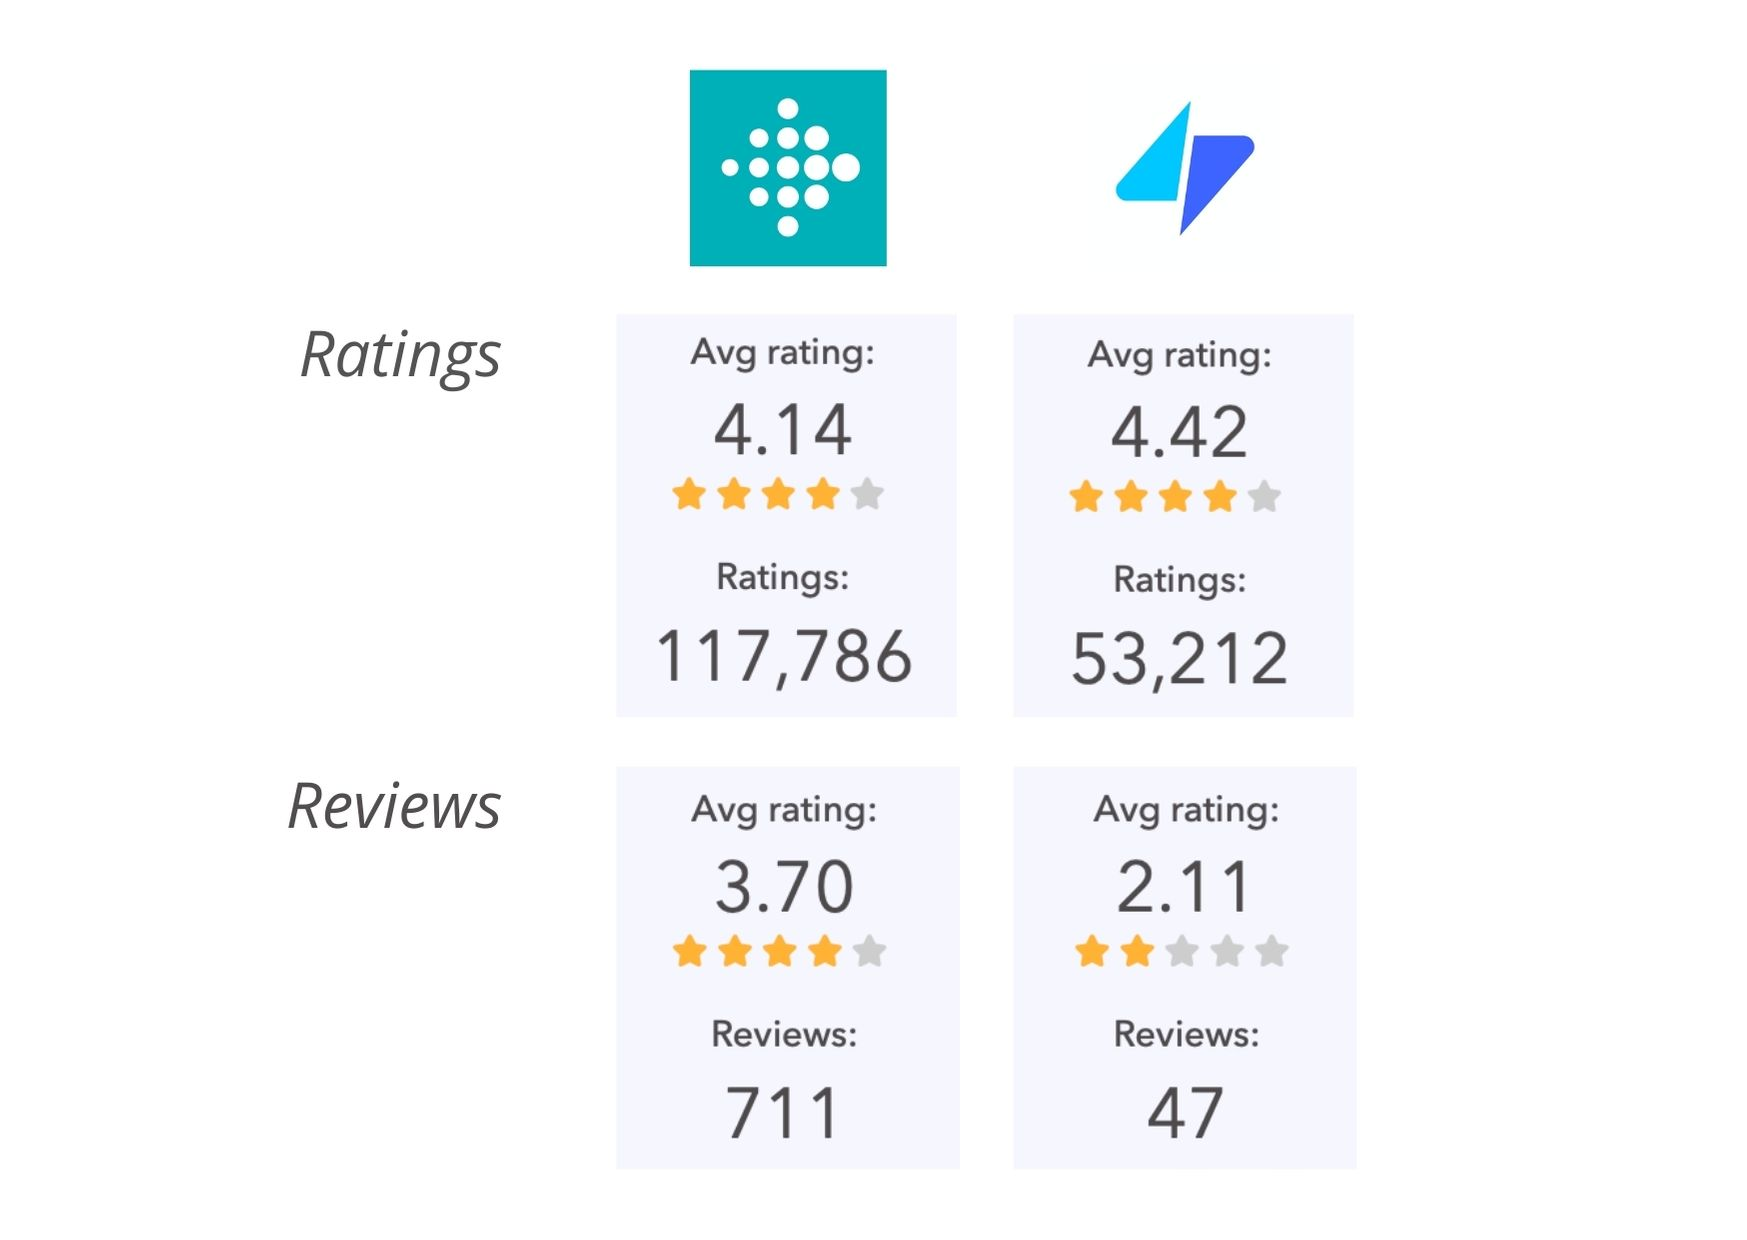 Ratings & Reviews for Fitbit and Fitness Coach iOS in the past month.